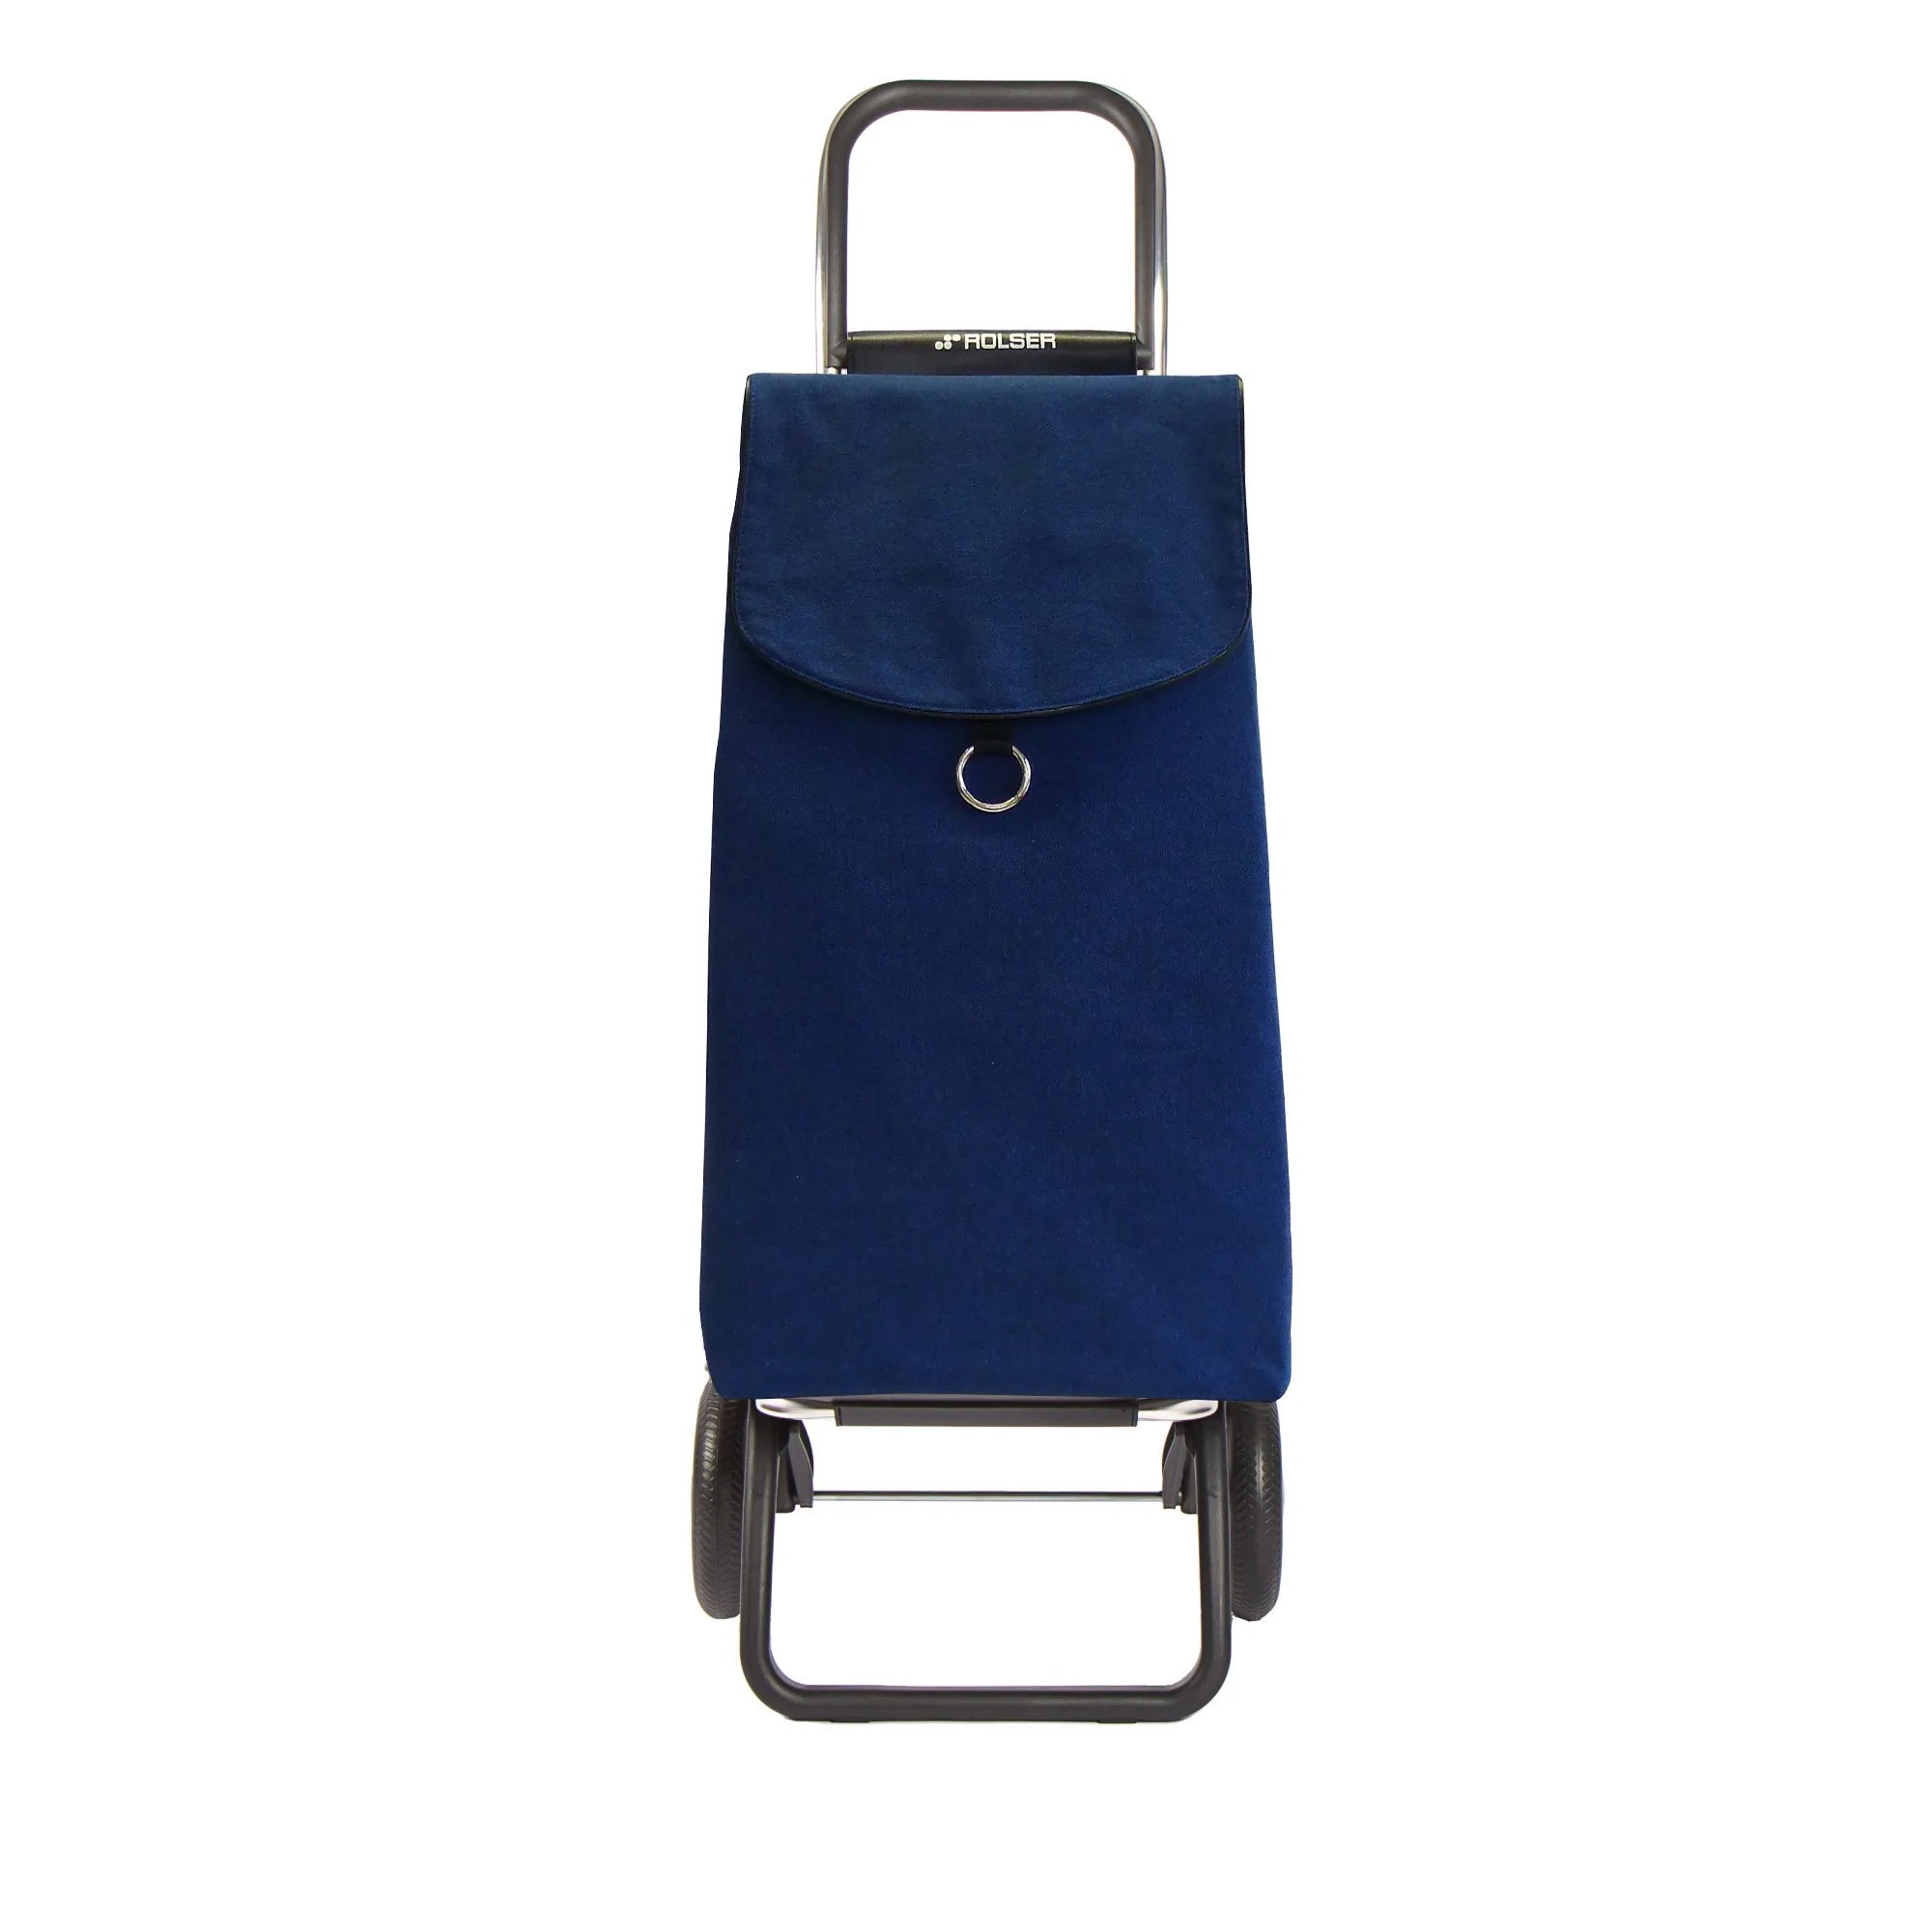 Shopping Trolley Bag On Wheels Australia Rolser Eco Rolling Shopping Cart Folding Shopping Cart With